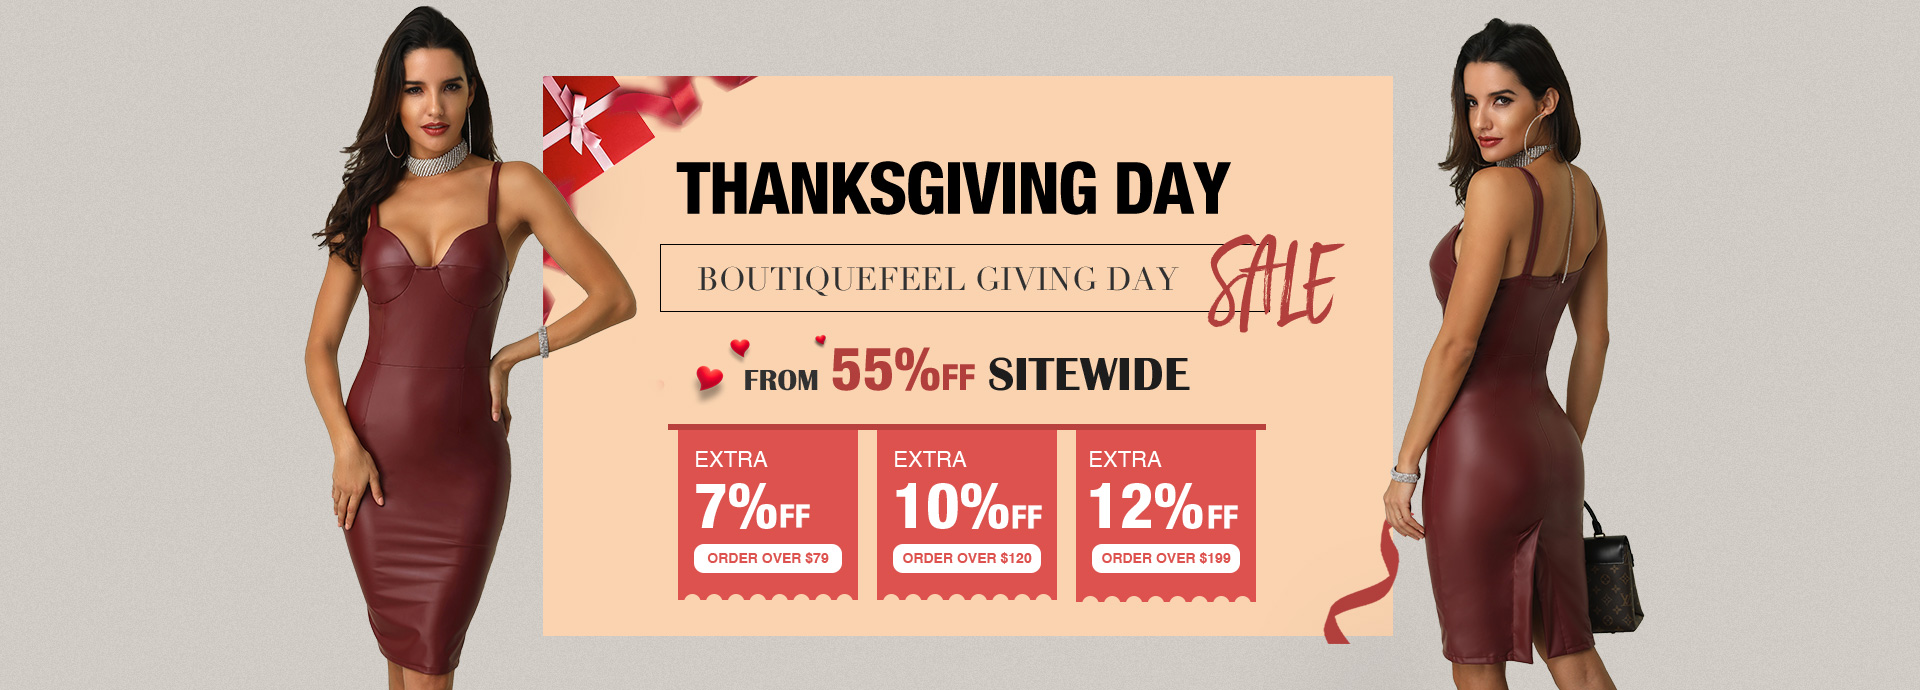 ThanksGiving Day Sale